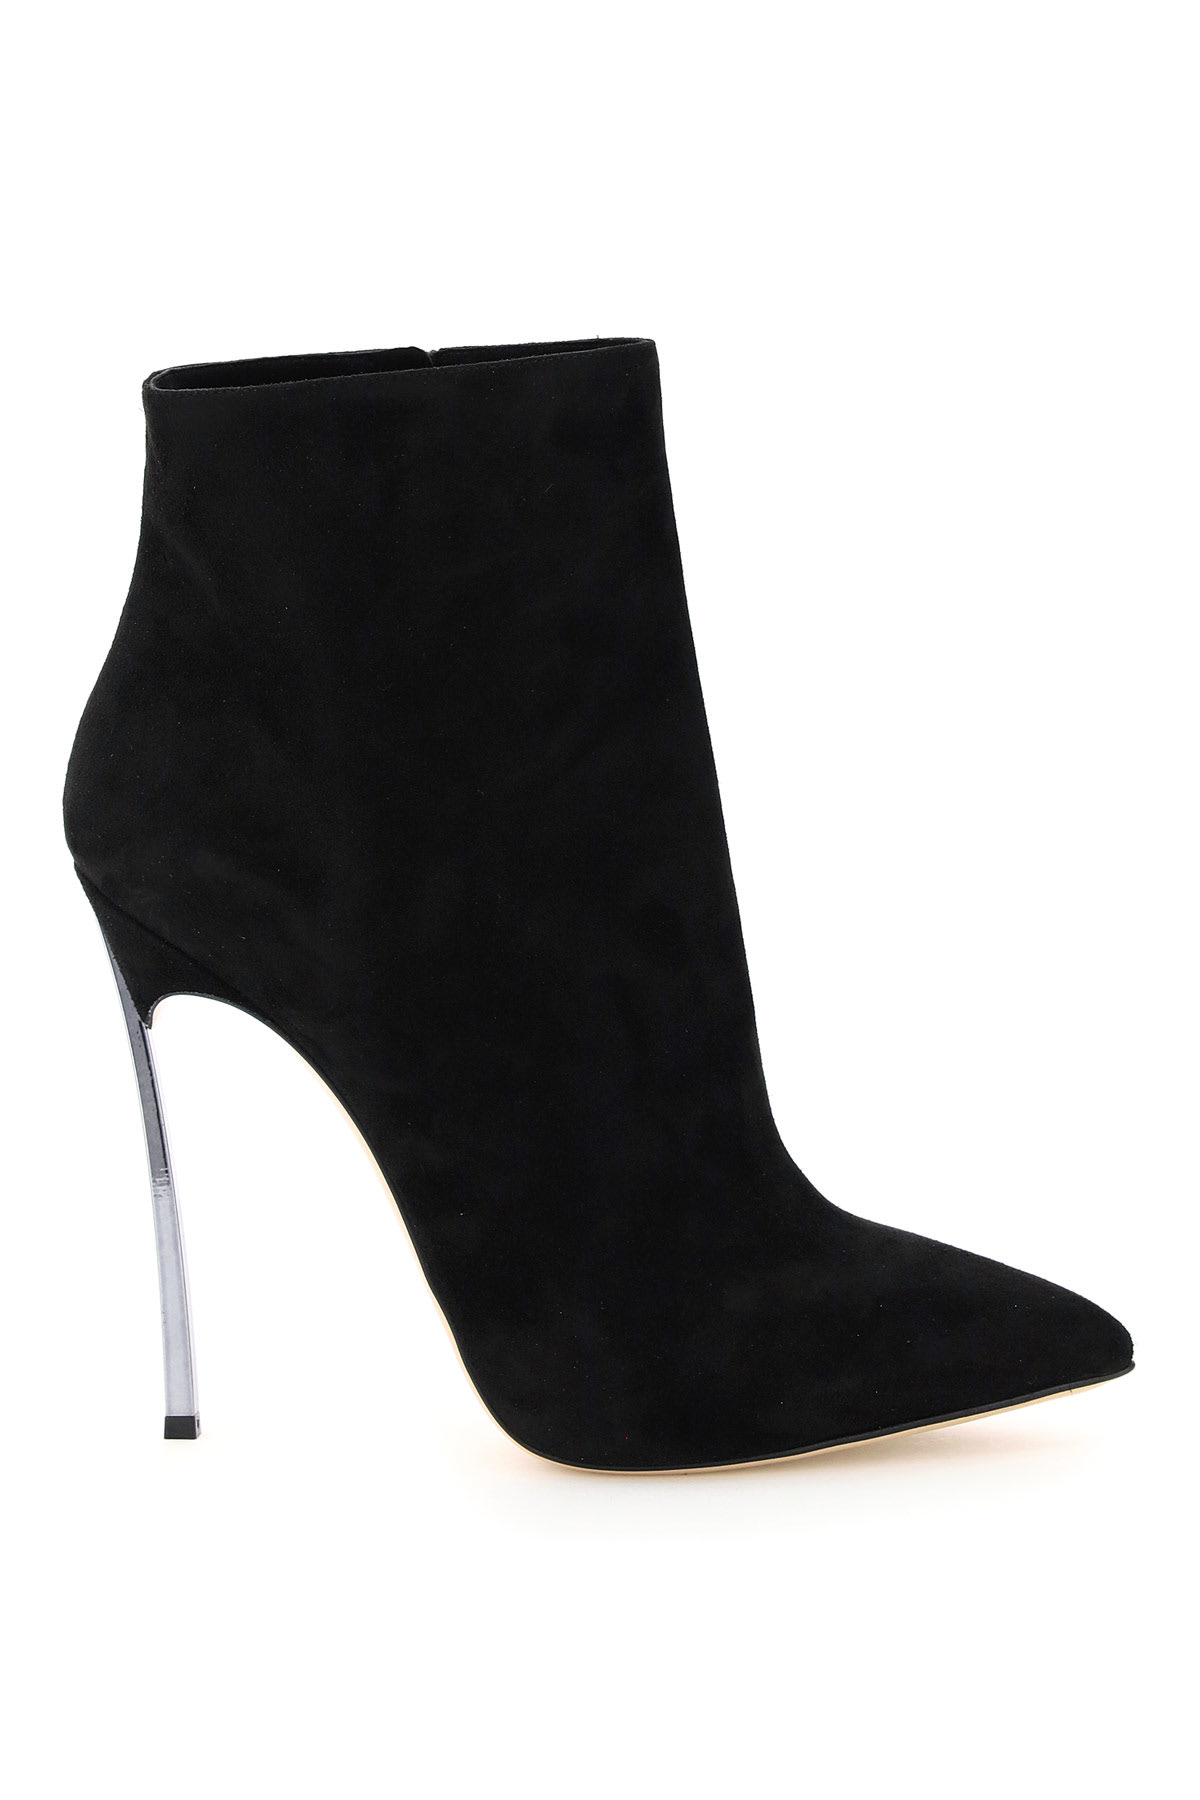 Casadei BLADE 120 SUEDE ANKLE BOOTS